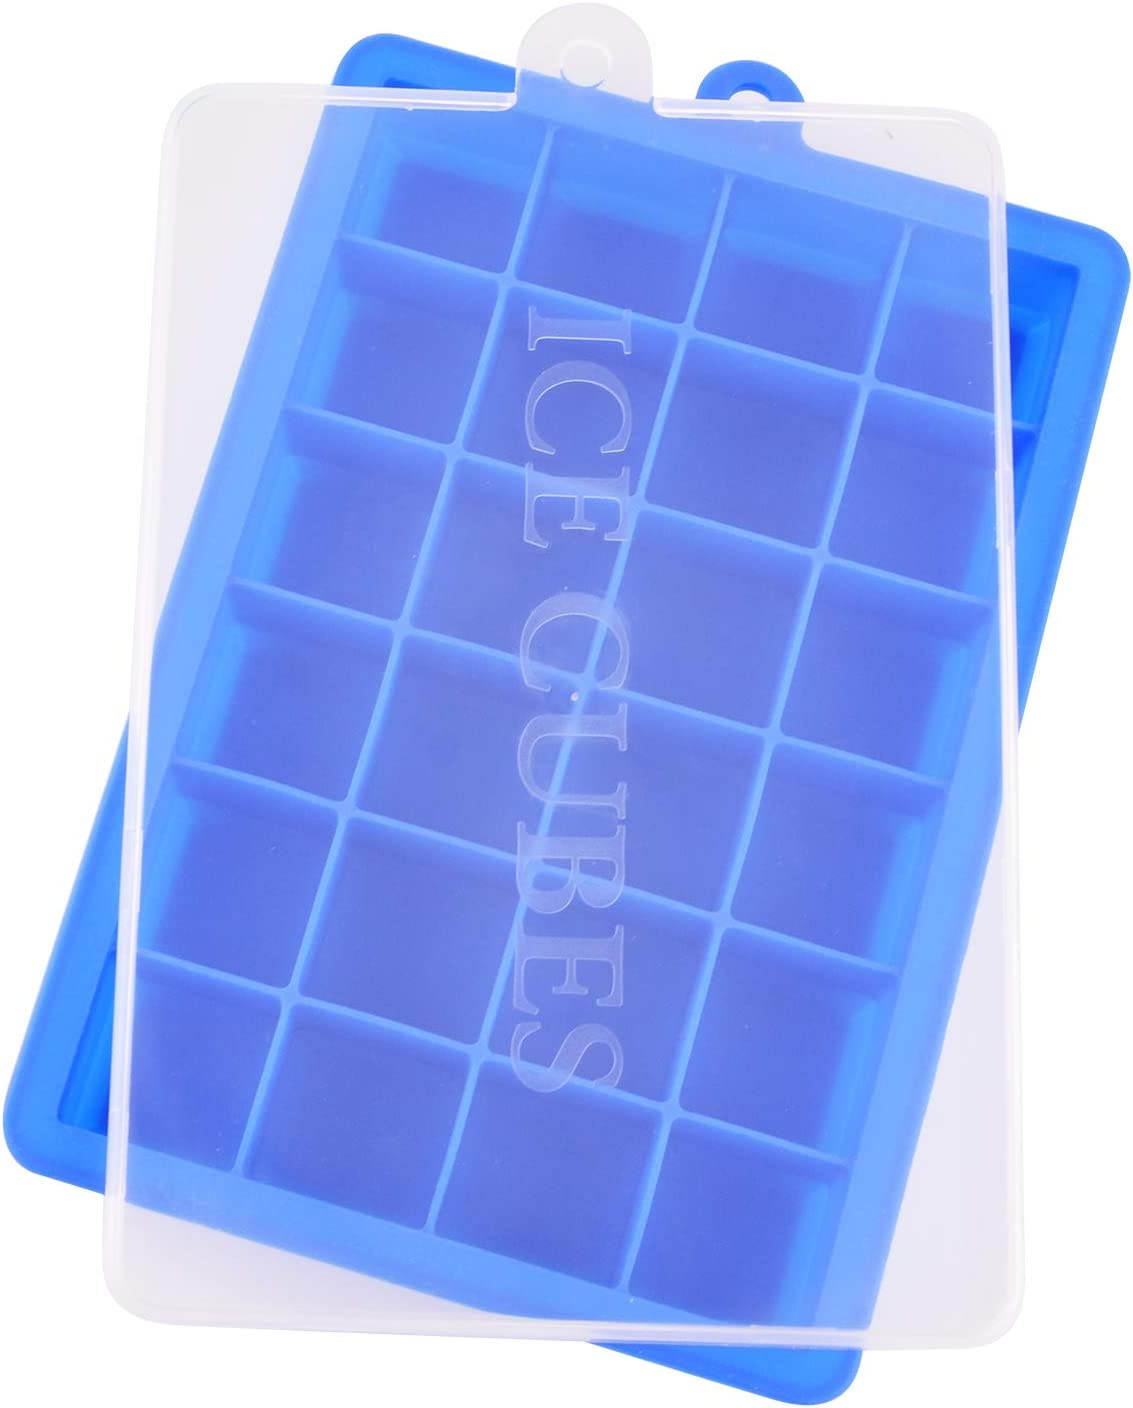 Ice Cube Tray, Silicone Ice Tray Molds Easy Release Ice Jelly Pudding Maker Mold, 24 Cavity (Blue)